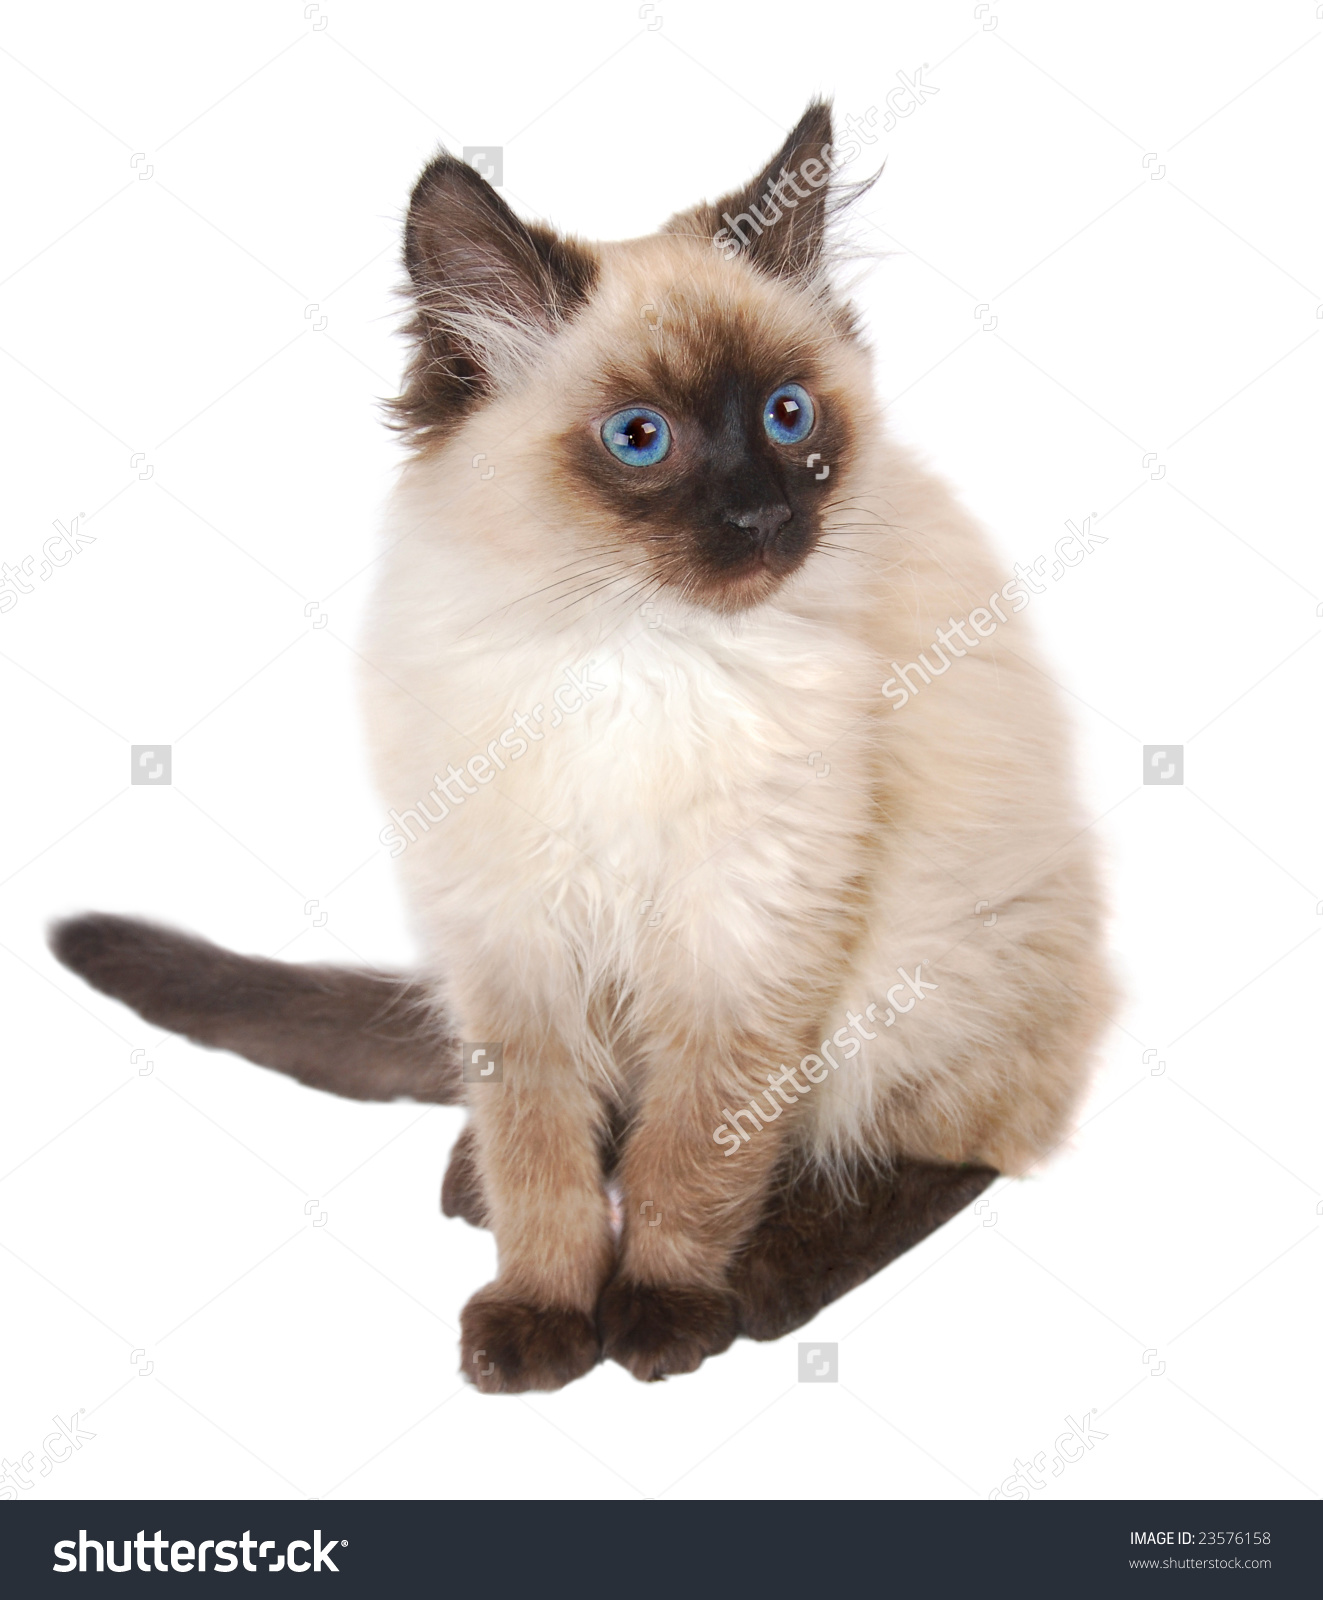 Himalayan Cat clipart #16, Download drawings